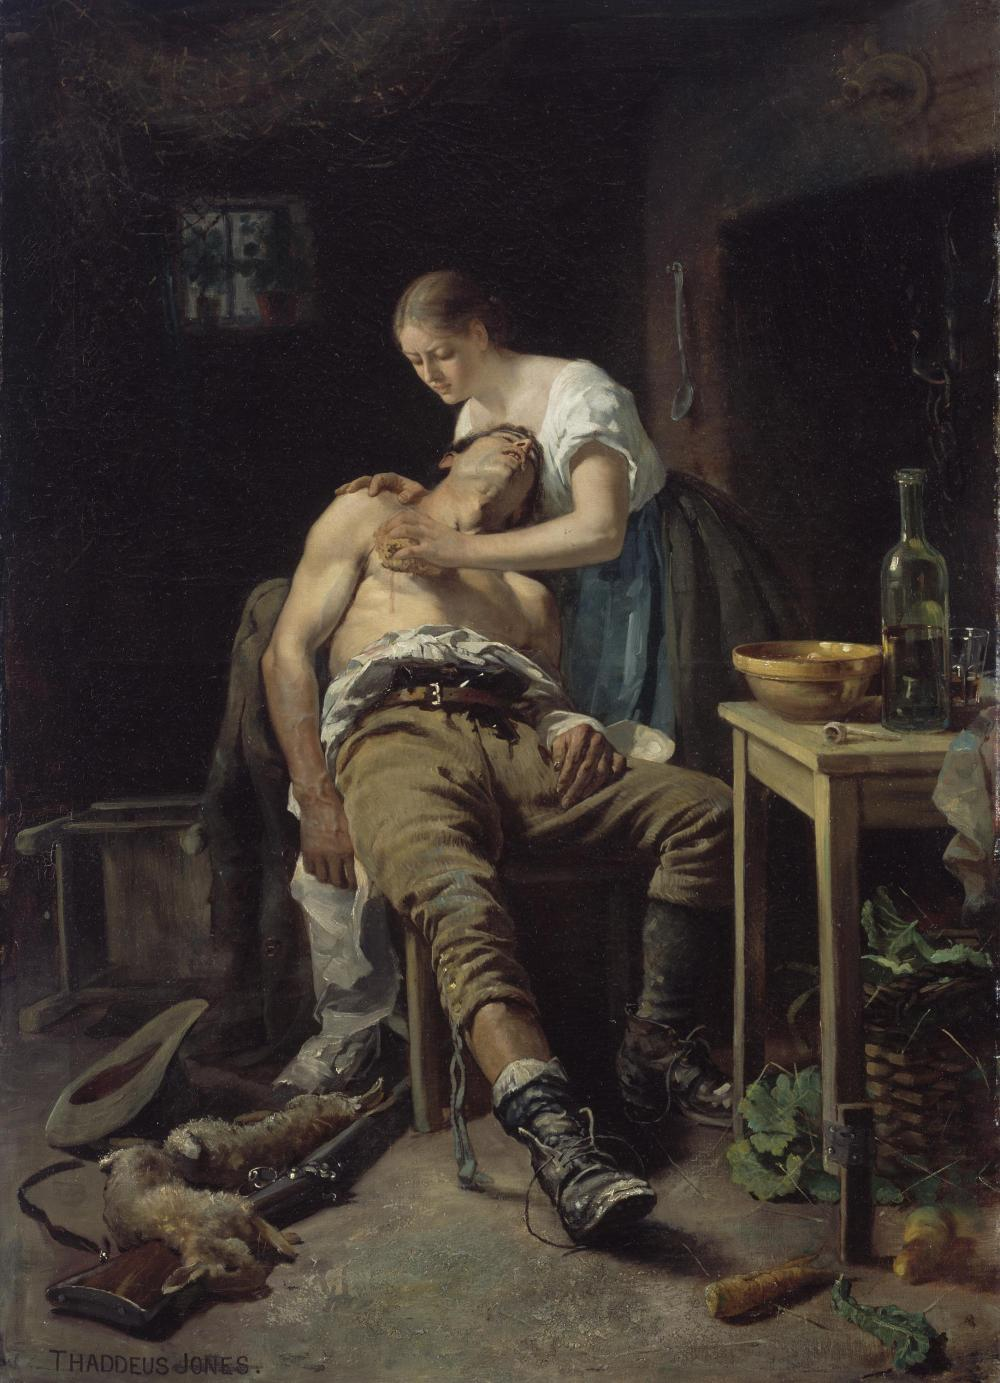 Wounded_Poacher_Henry_Jones_Thaddeus.jpg